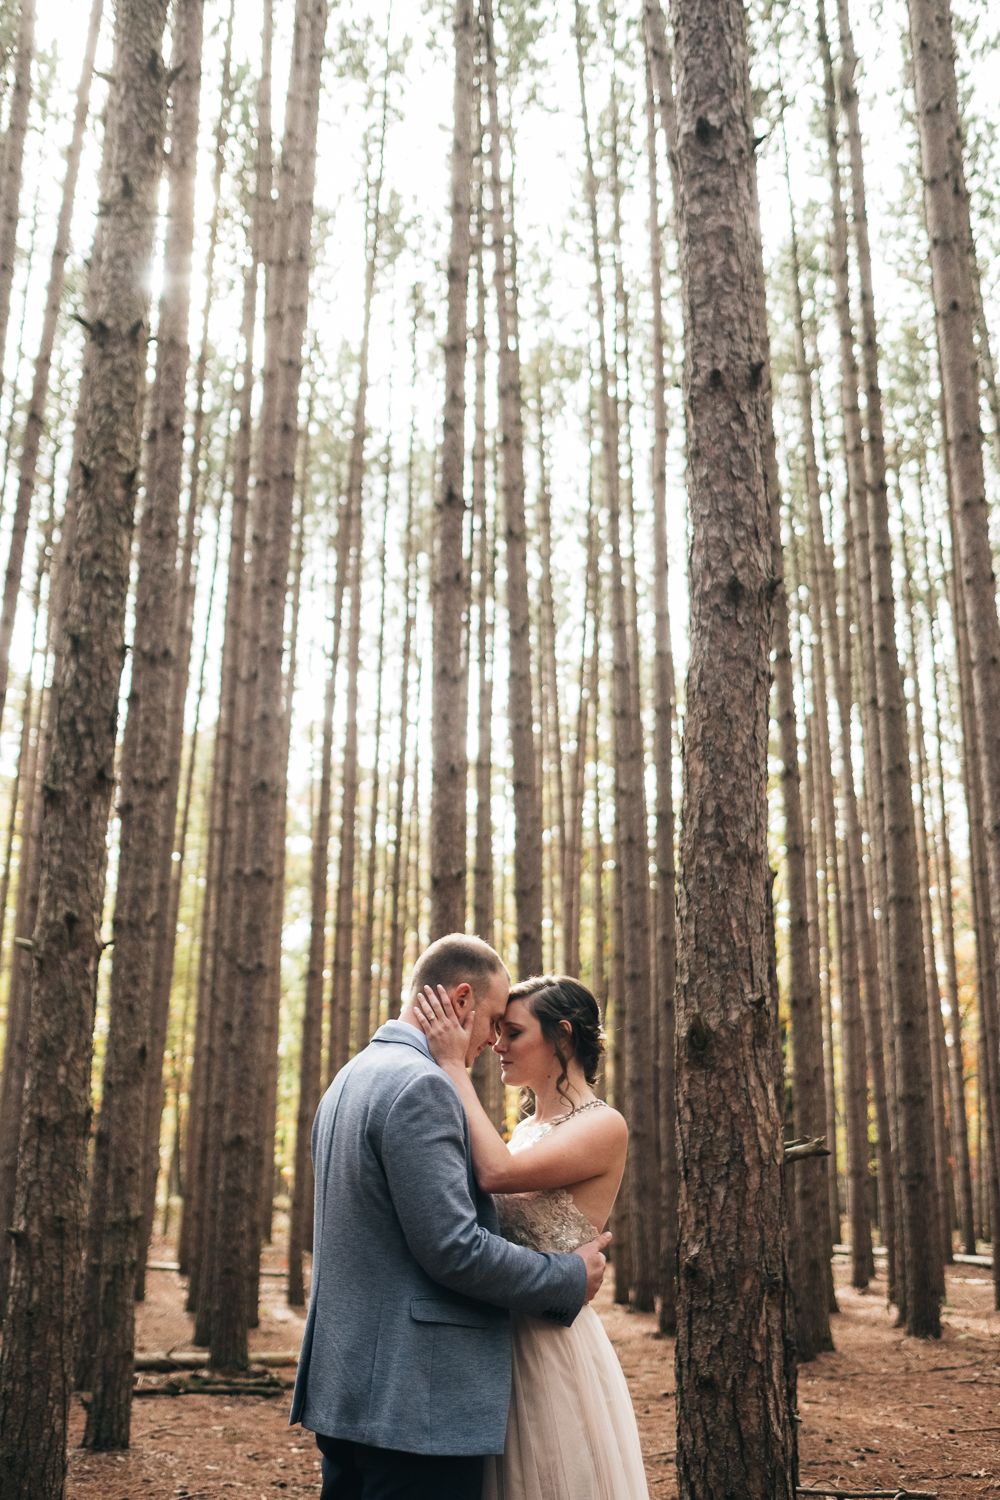 Best places to take wedding pictures include Oak Openings park near Maumee Ohio